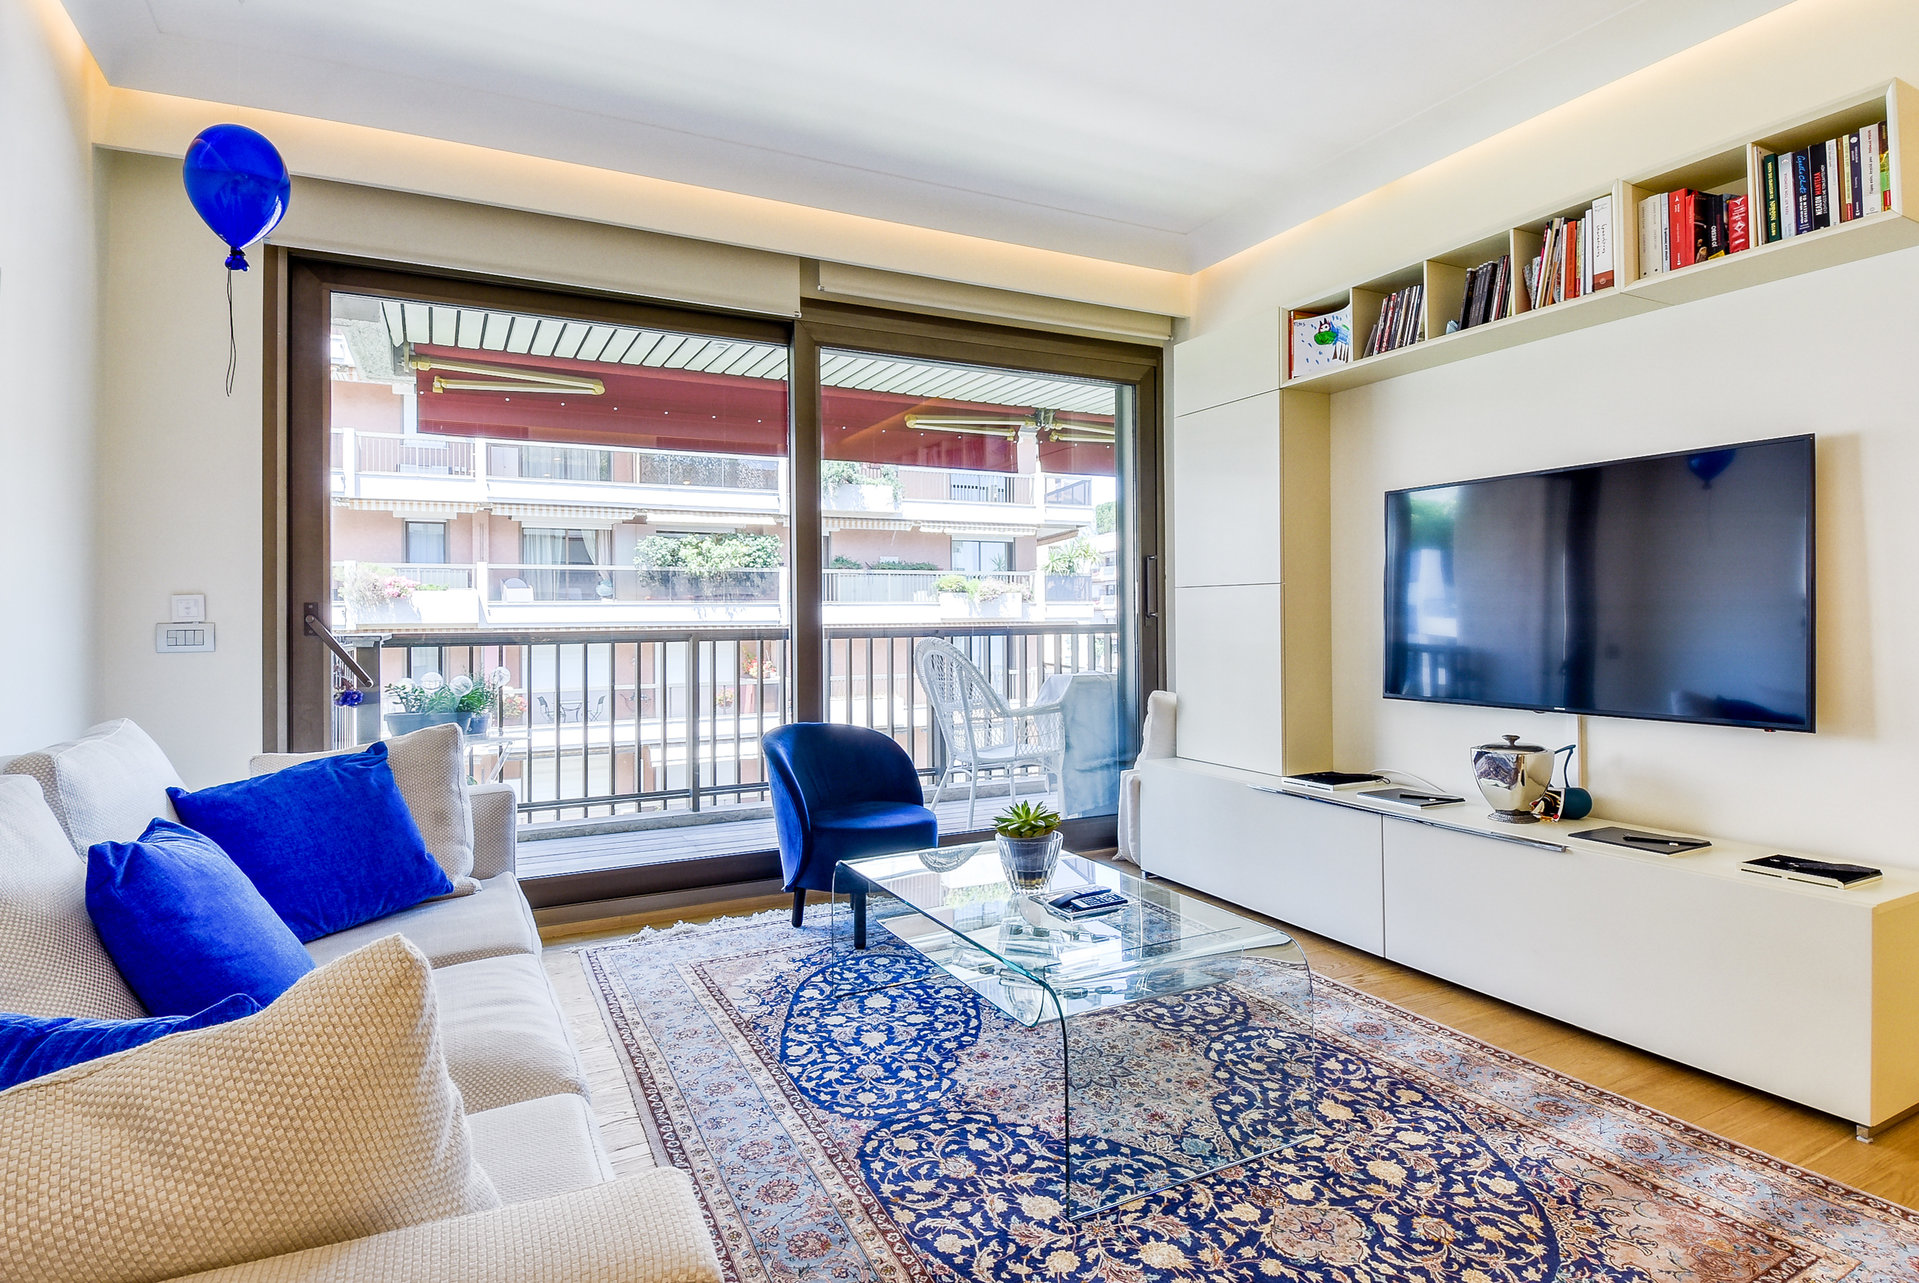 1/2 Bedroom apartment for sale in Mirabel